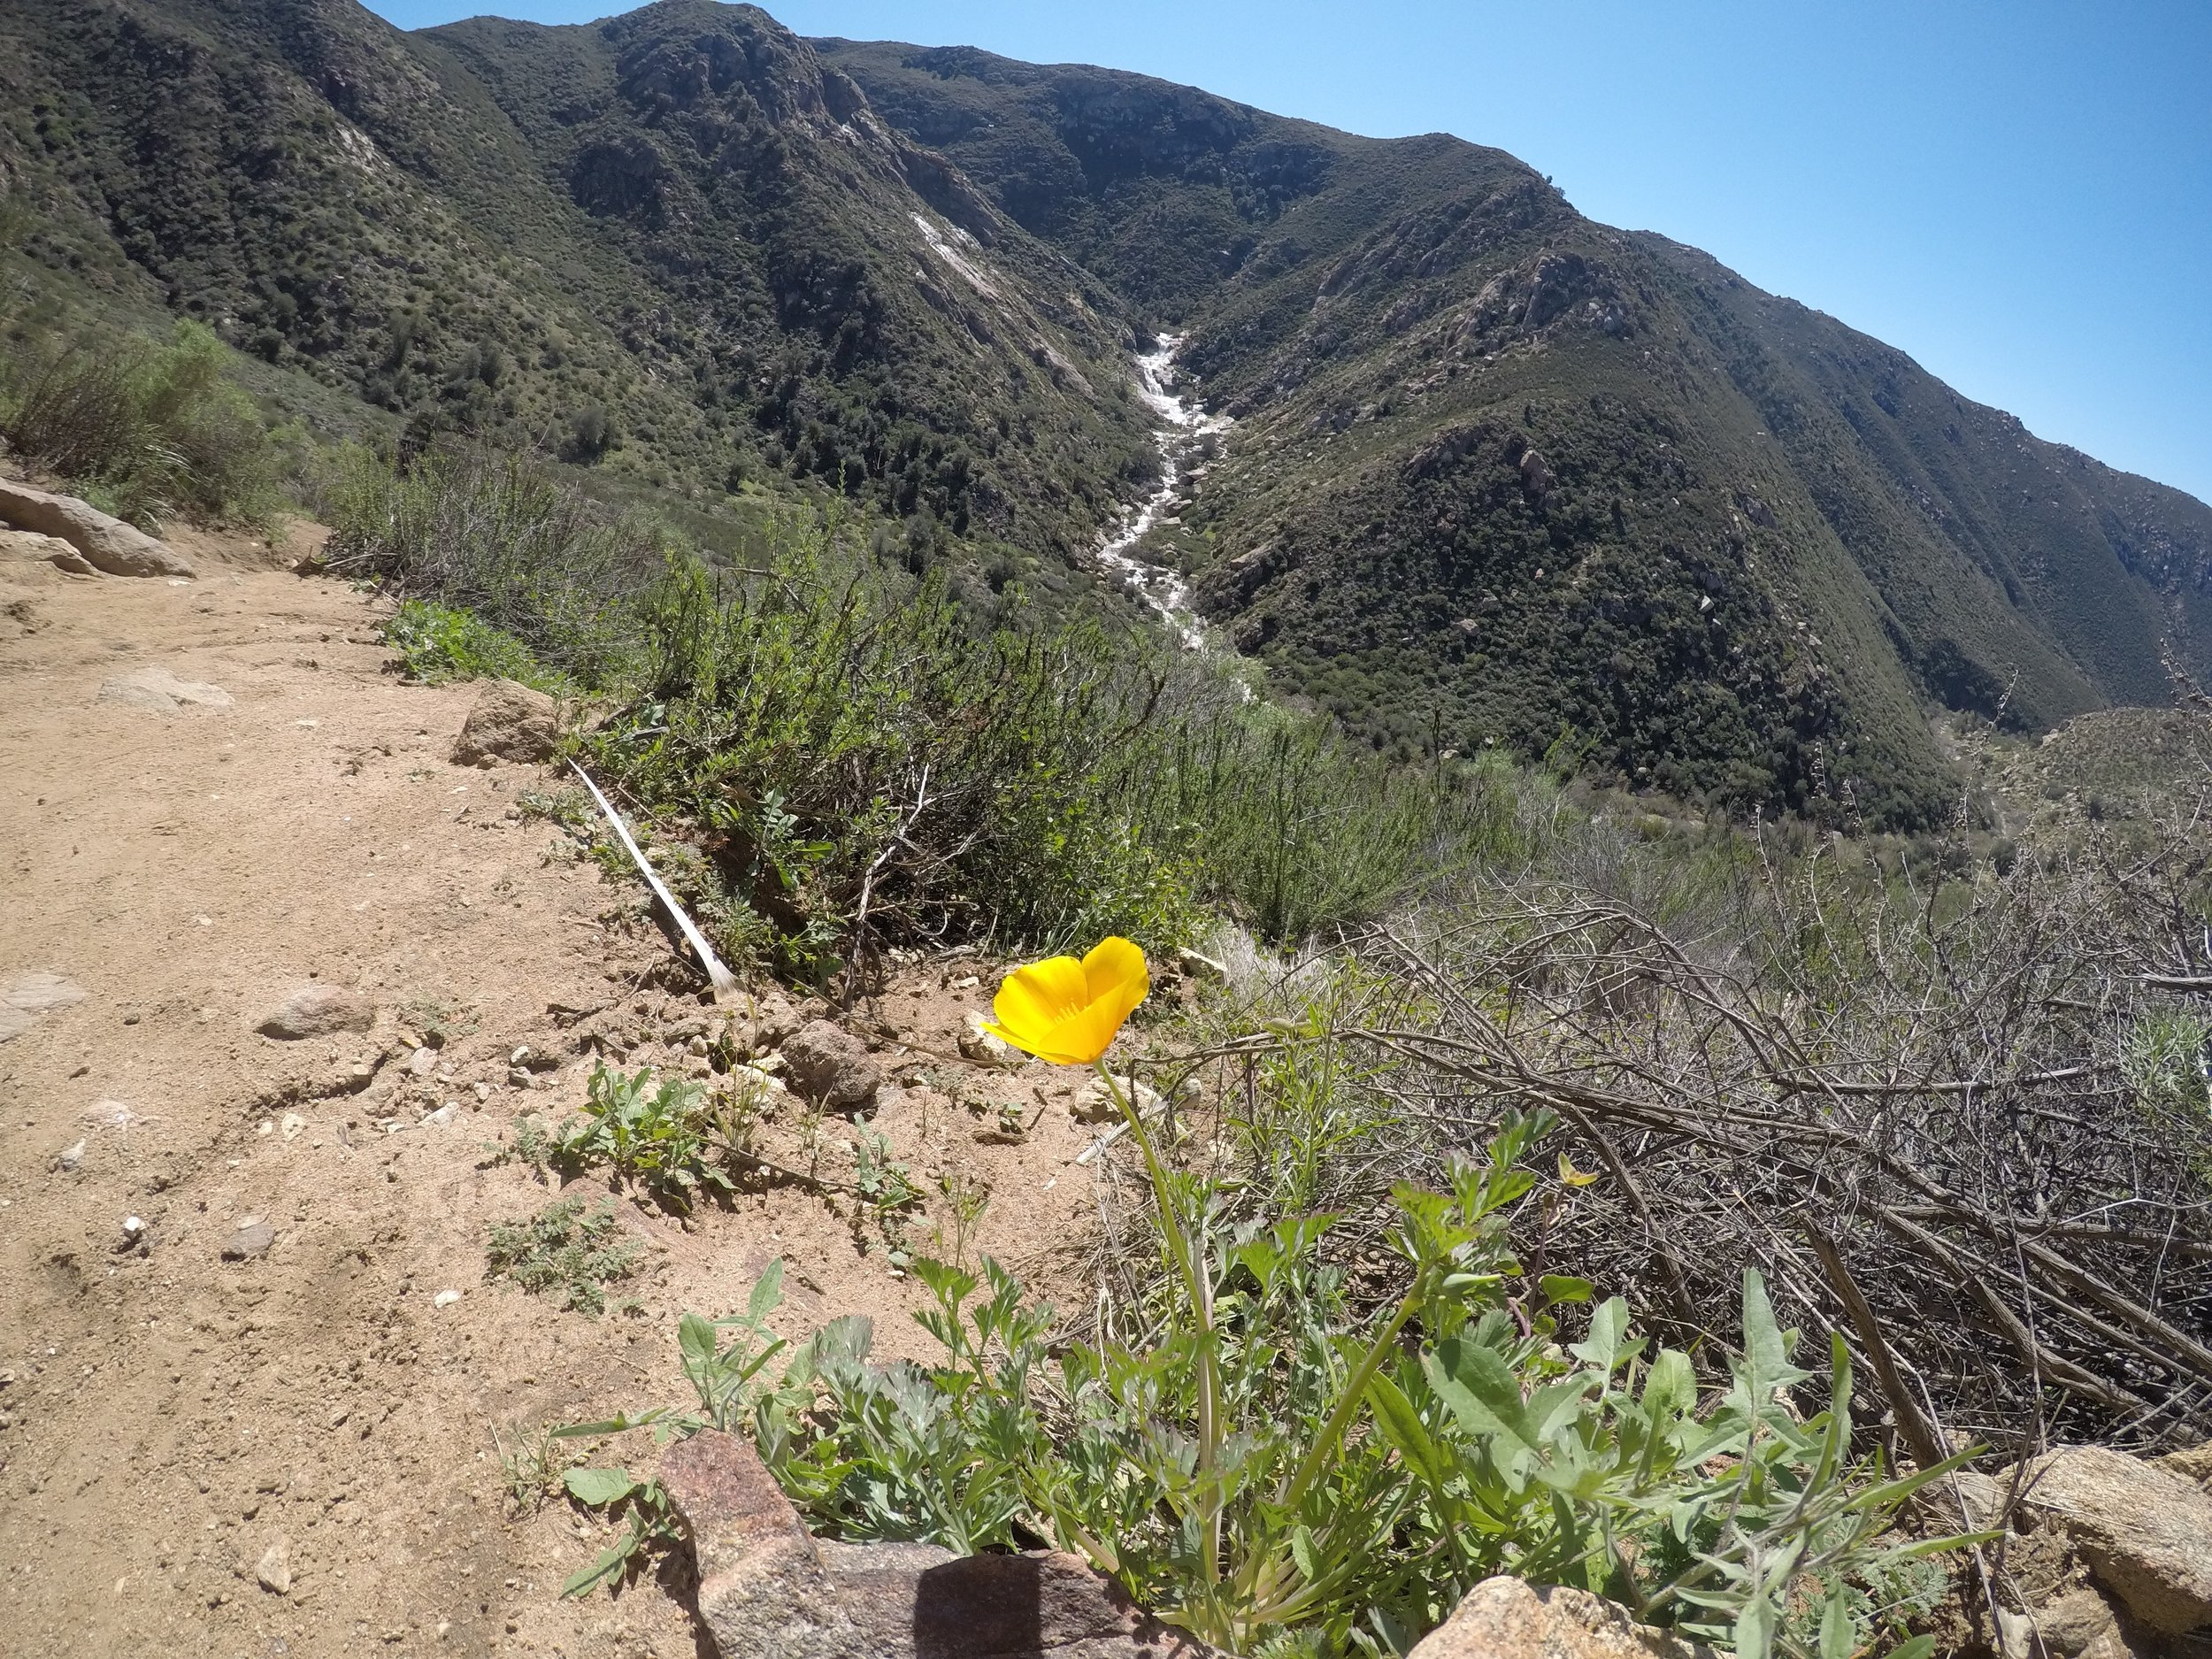 The hike to Three Sisters features a steep downhill descent to the falls, and a steep uphill ascent to the trailhead.